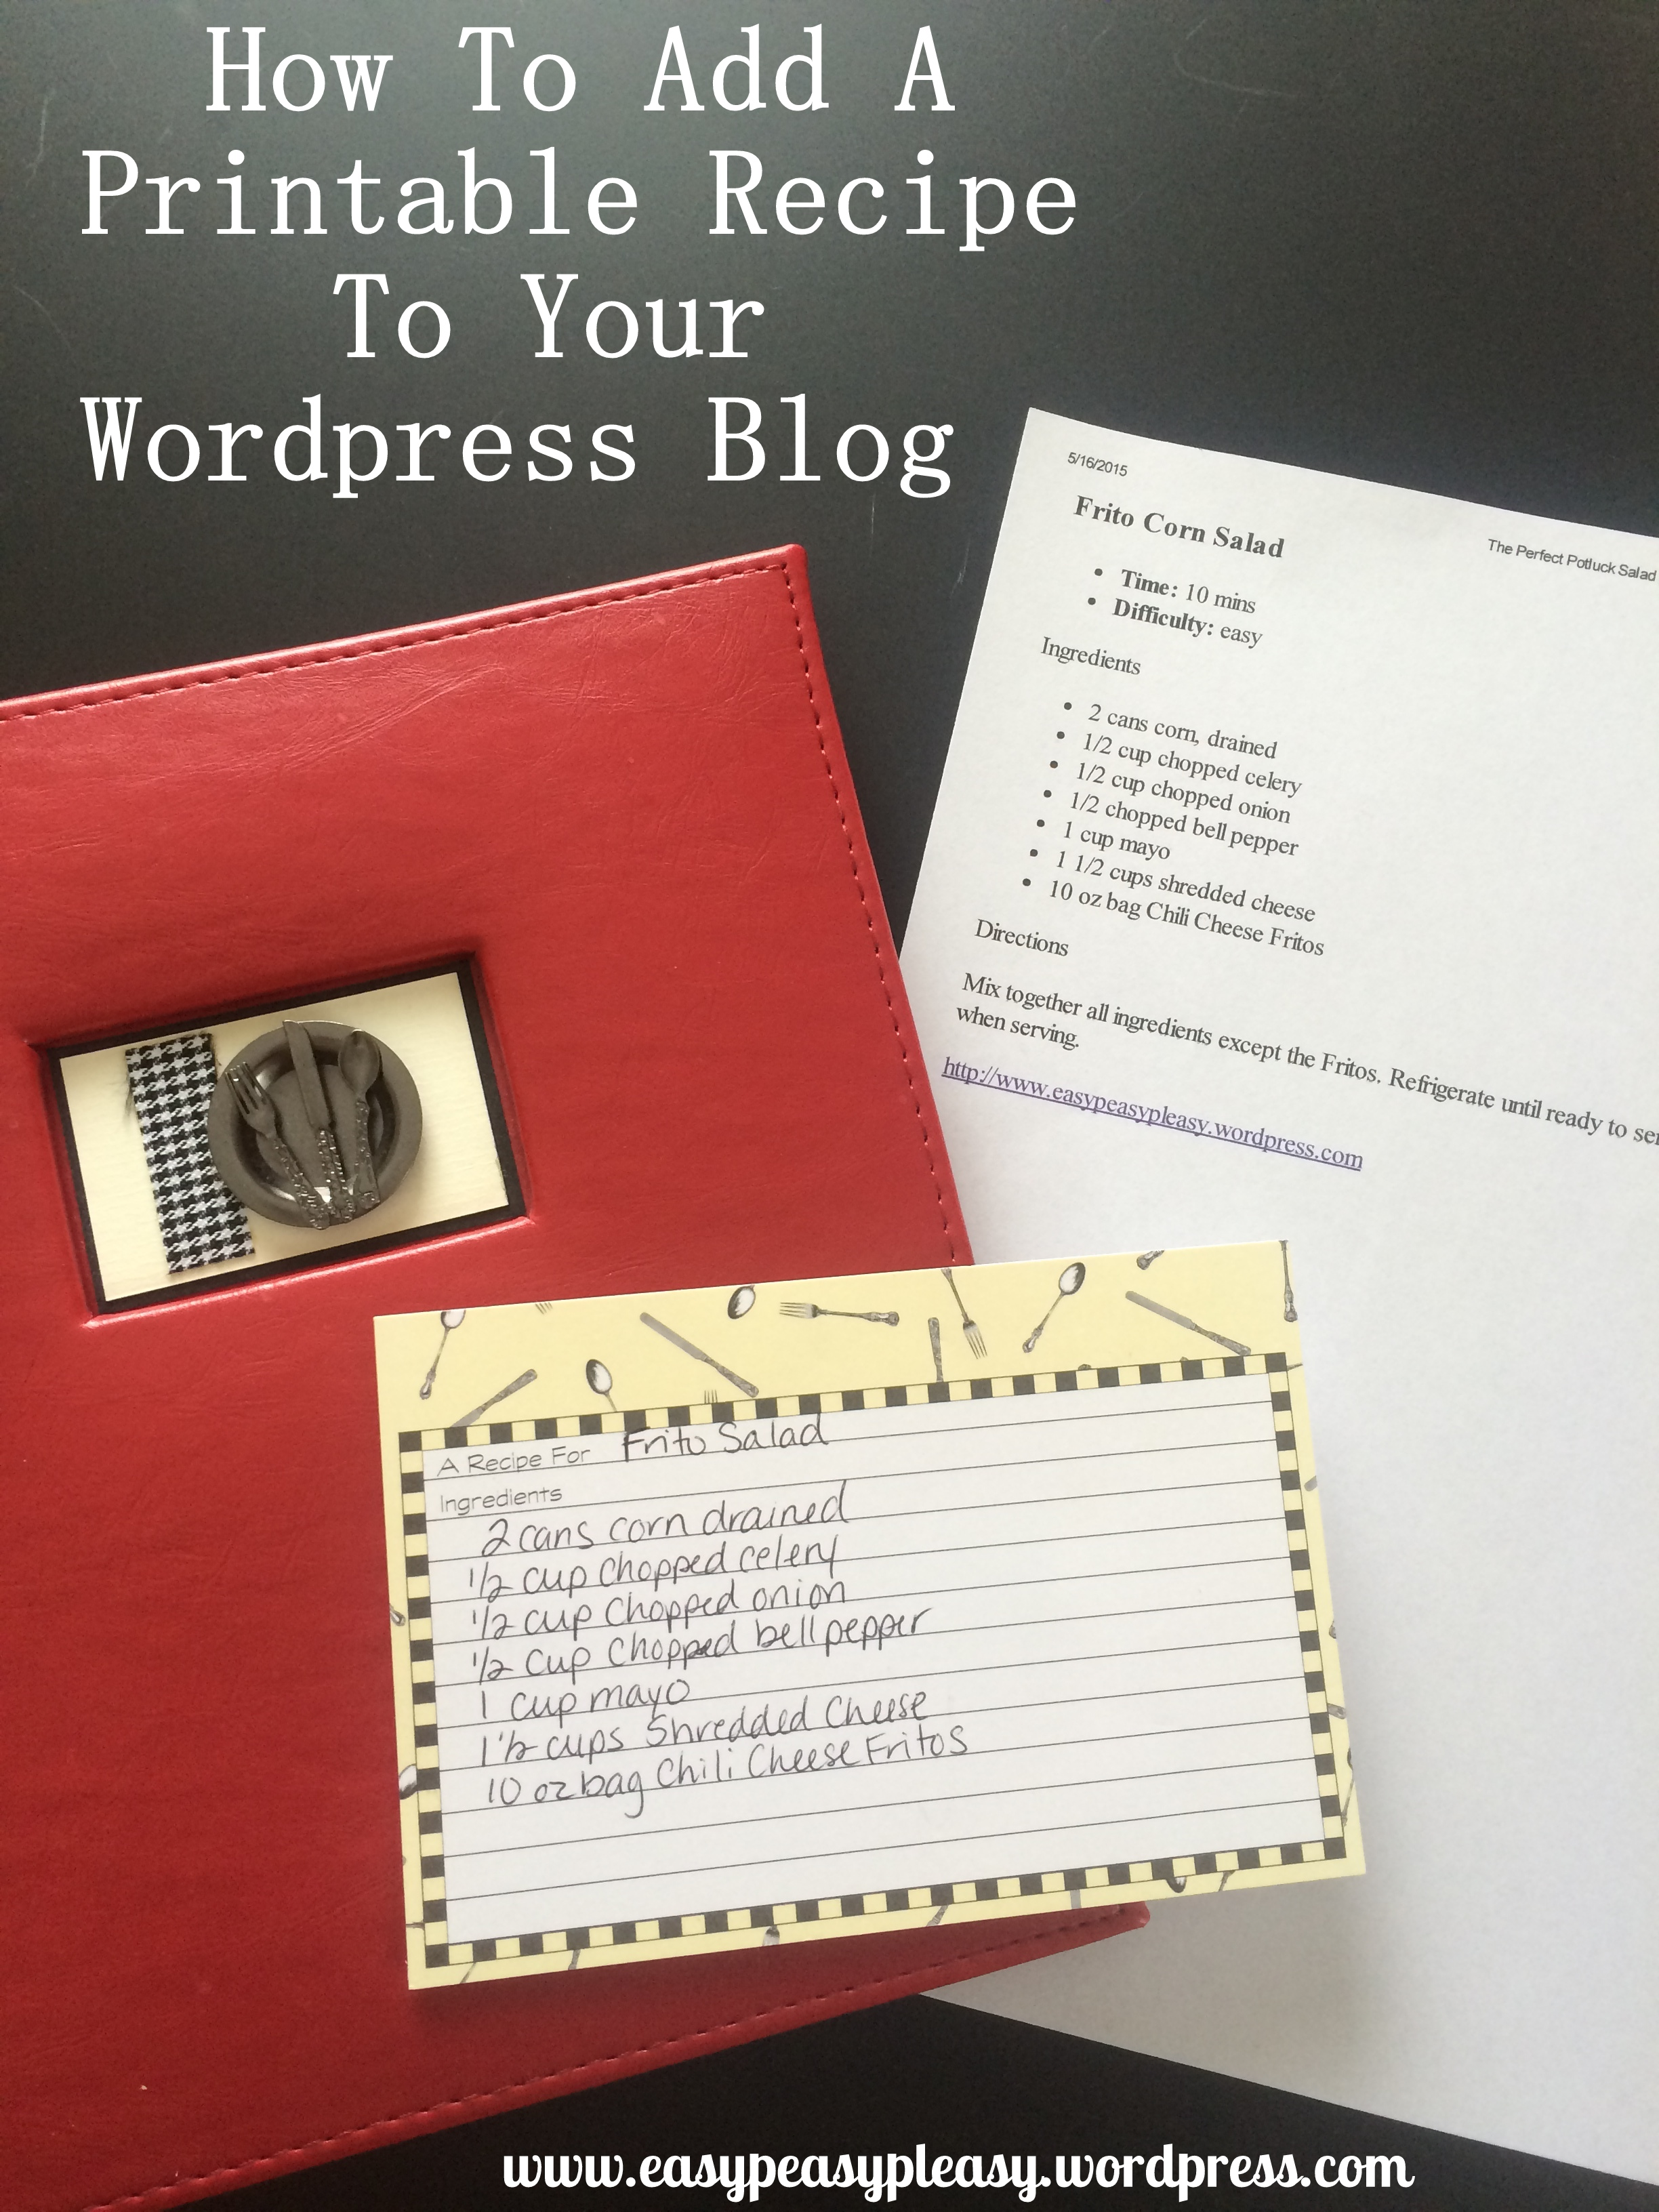 Let me show you how to add and embed a printable recipe to your WordPress blog.